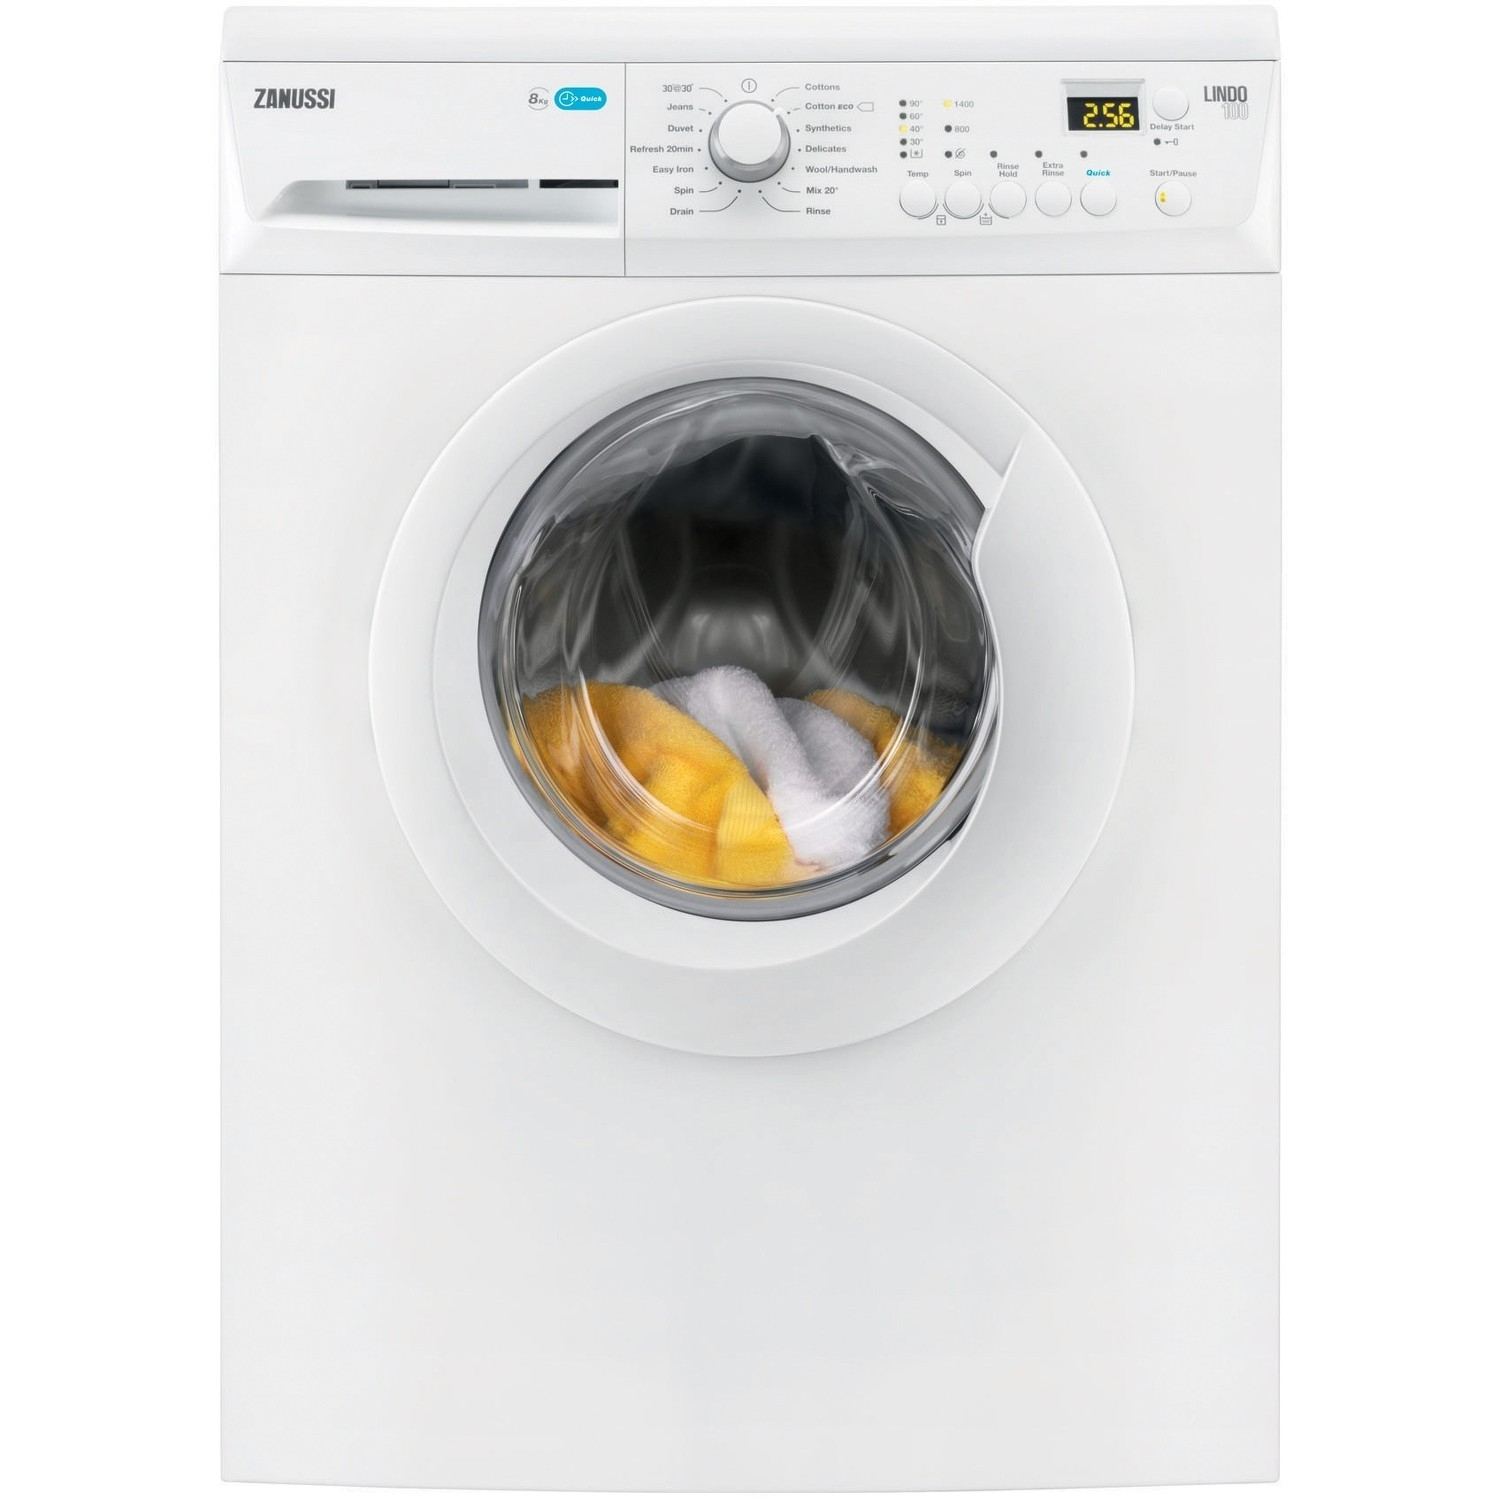 Zanussi 8kg 1400 Spin Washing Machine - White - A+++ Rated - 0